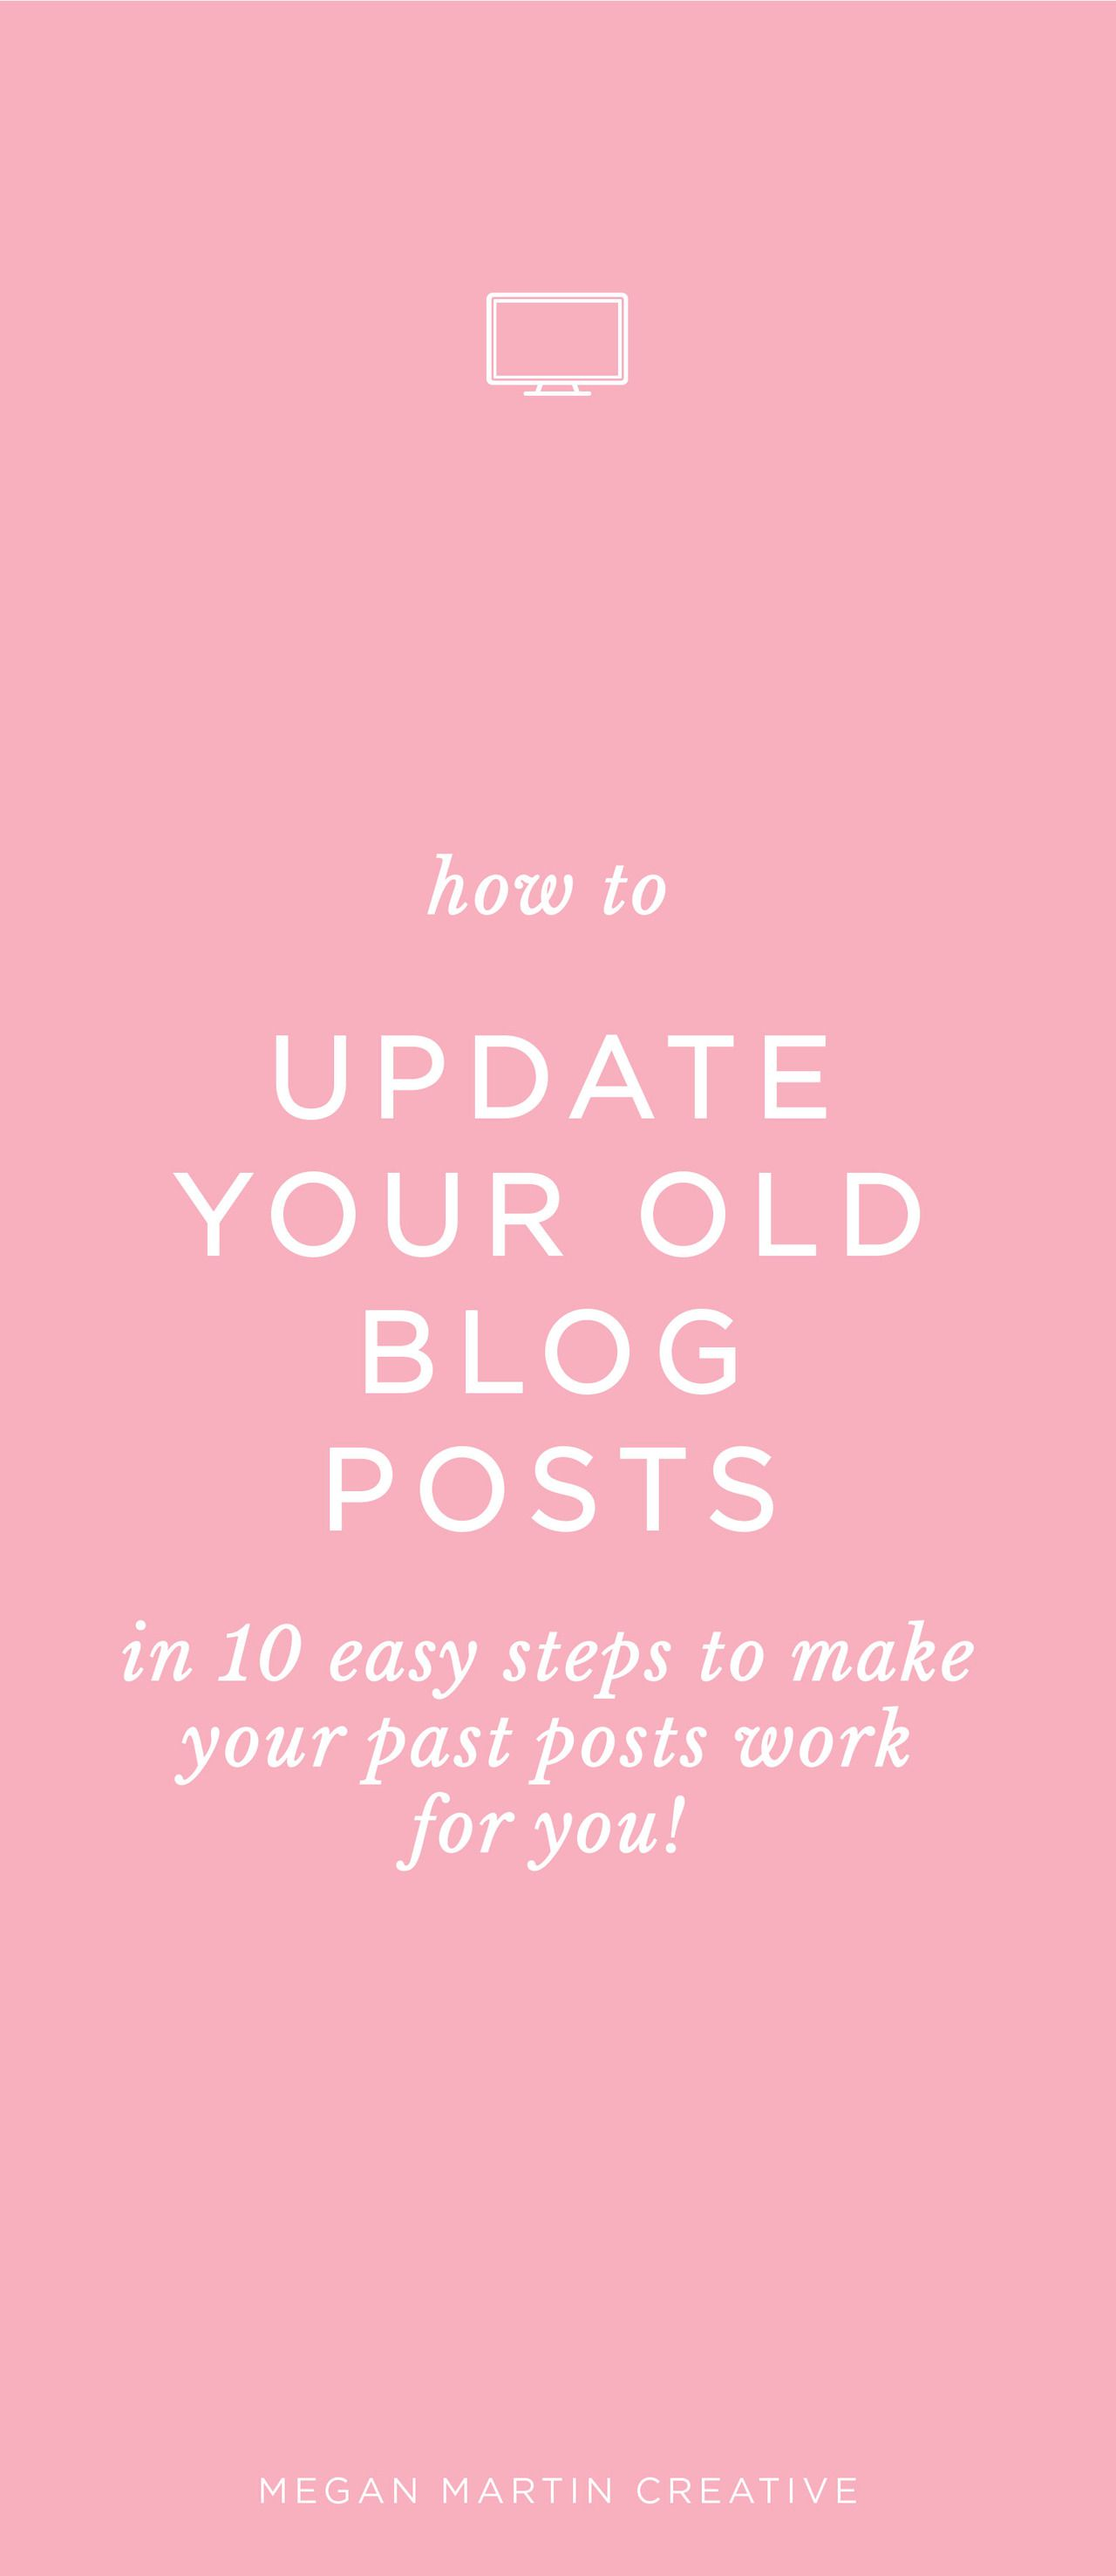 How To Update Old Blog Posts To Revive Your Work With Images